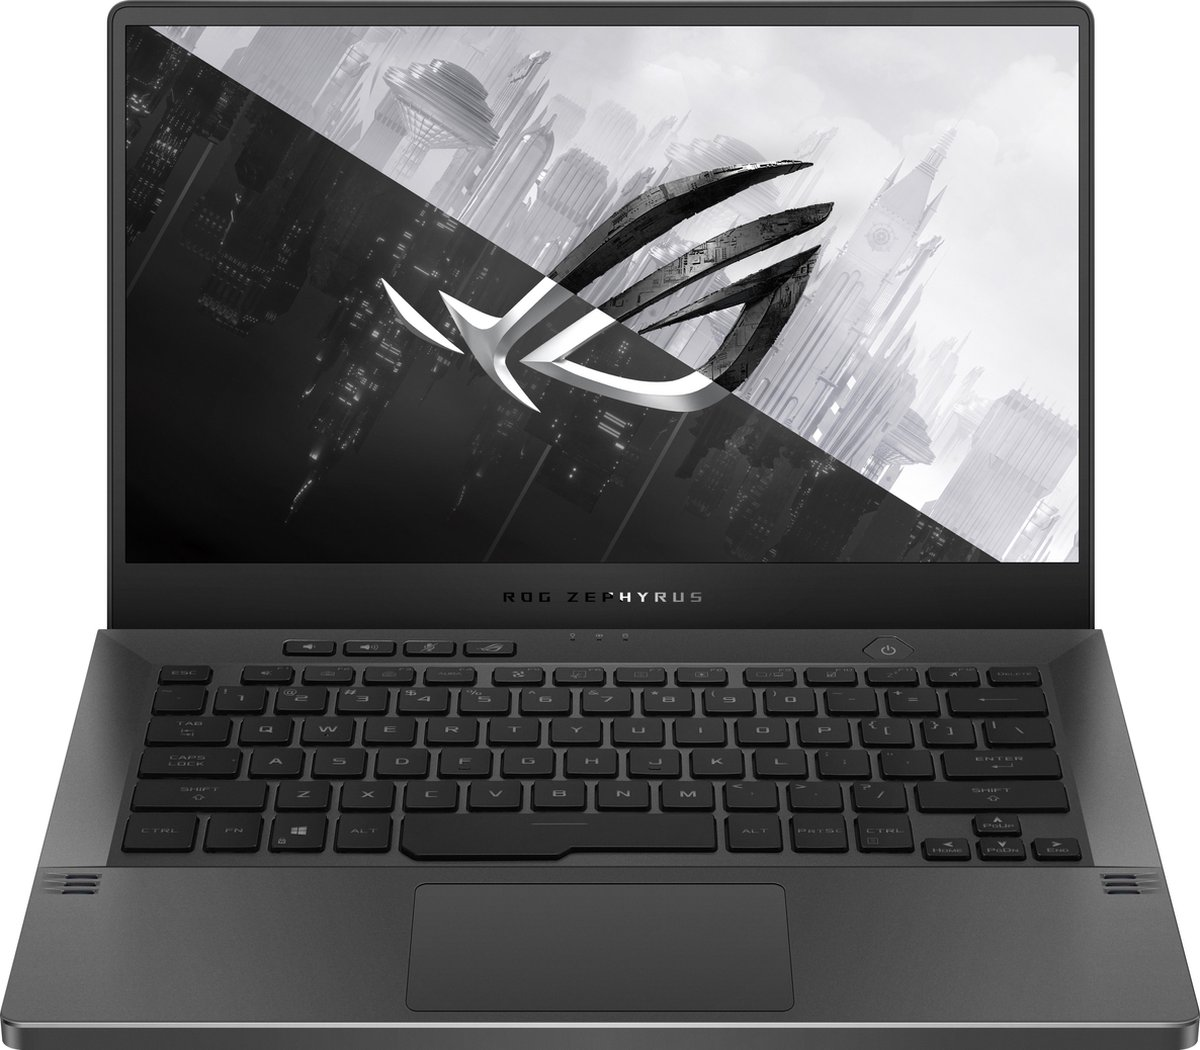 ASUS ROG Zephyrus G14 GA401QM-K2023T-BE – Gaming Laptop – 14 inch – AZERTY